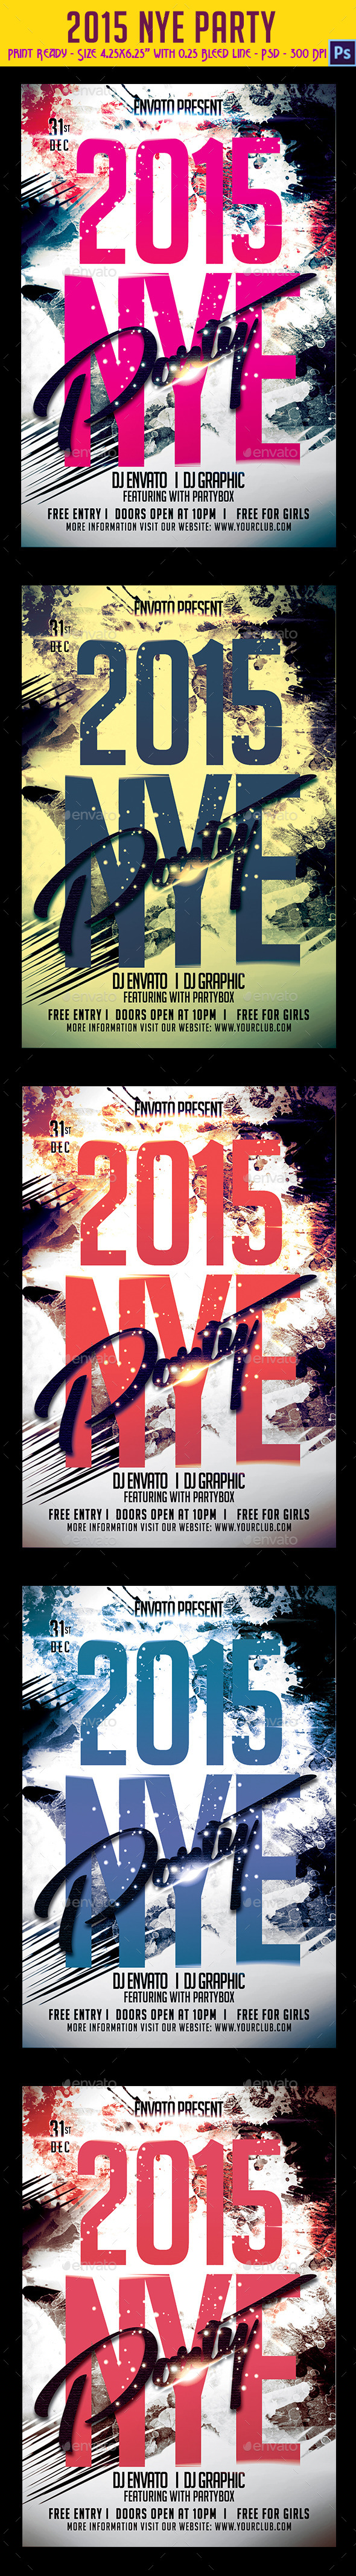 2015 NYE Party Flyer - Clubs & Parties Events